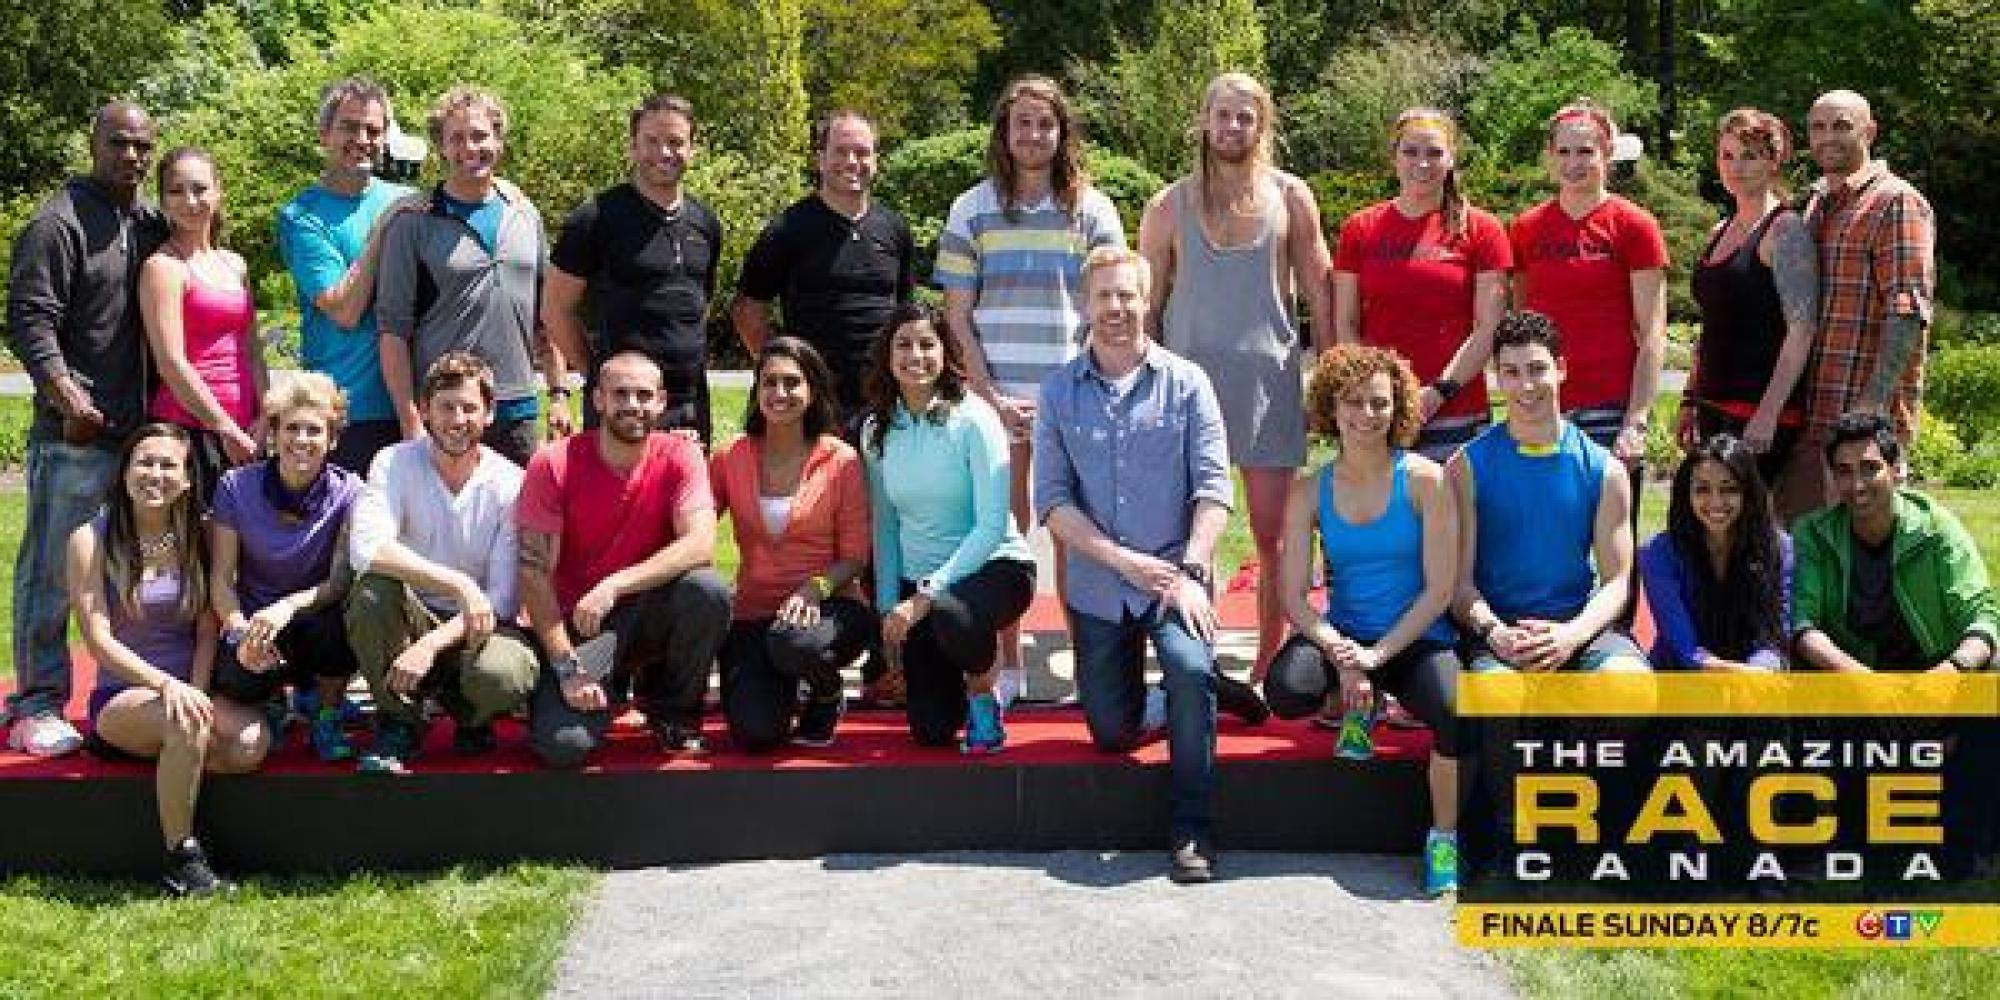 The Amazing Race Canada: Season 1